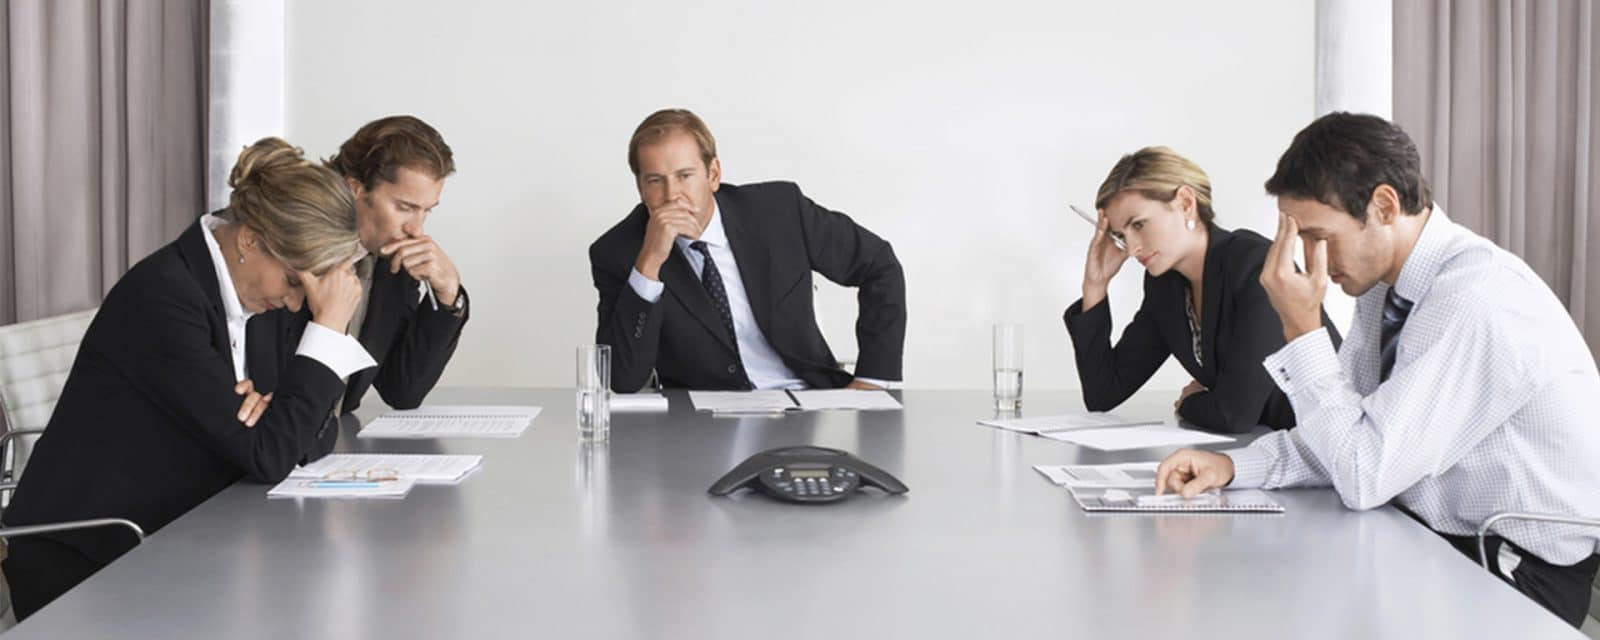 conference call 1600x640 - Staff meetings: how effective are they?